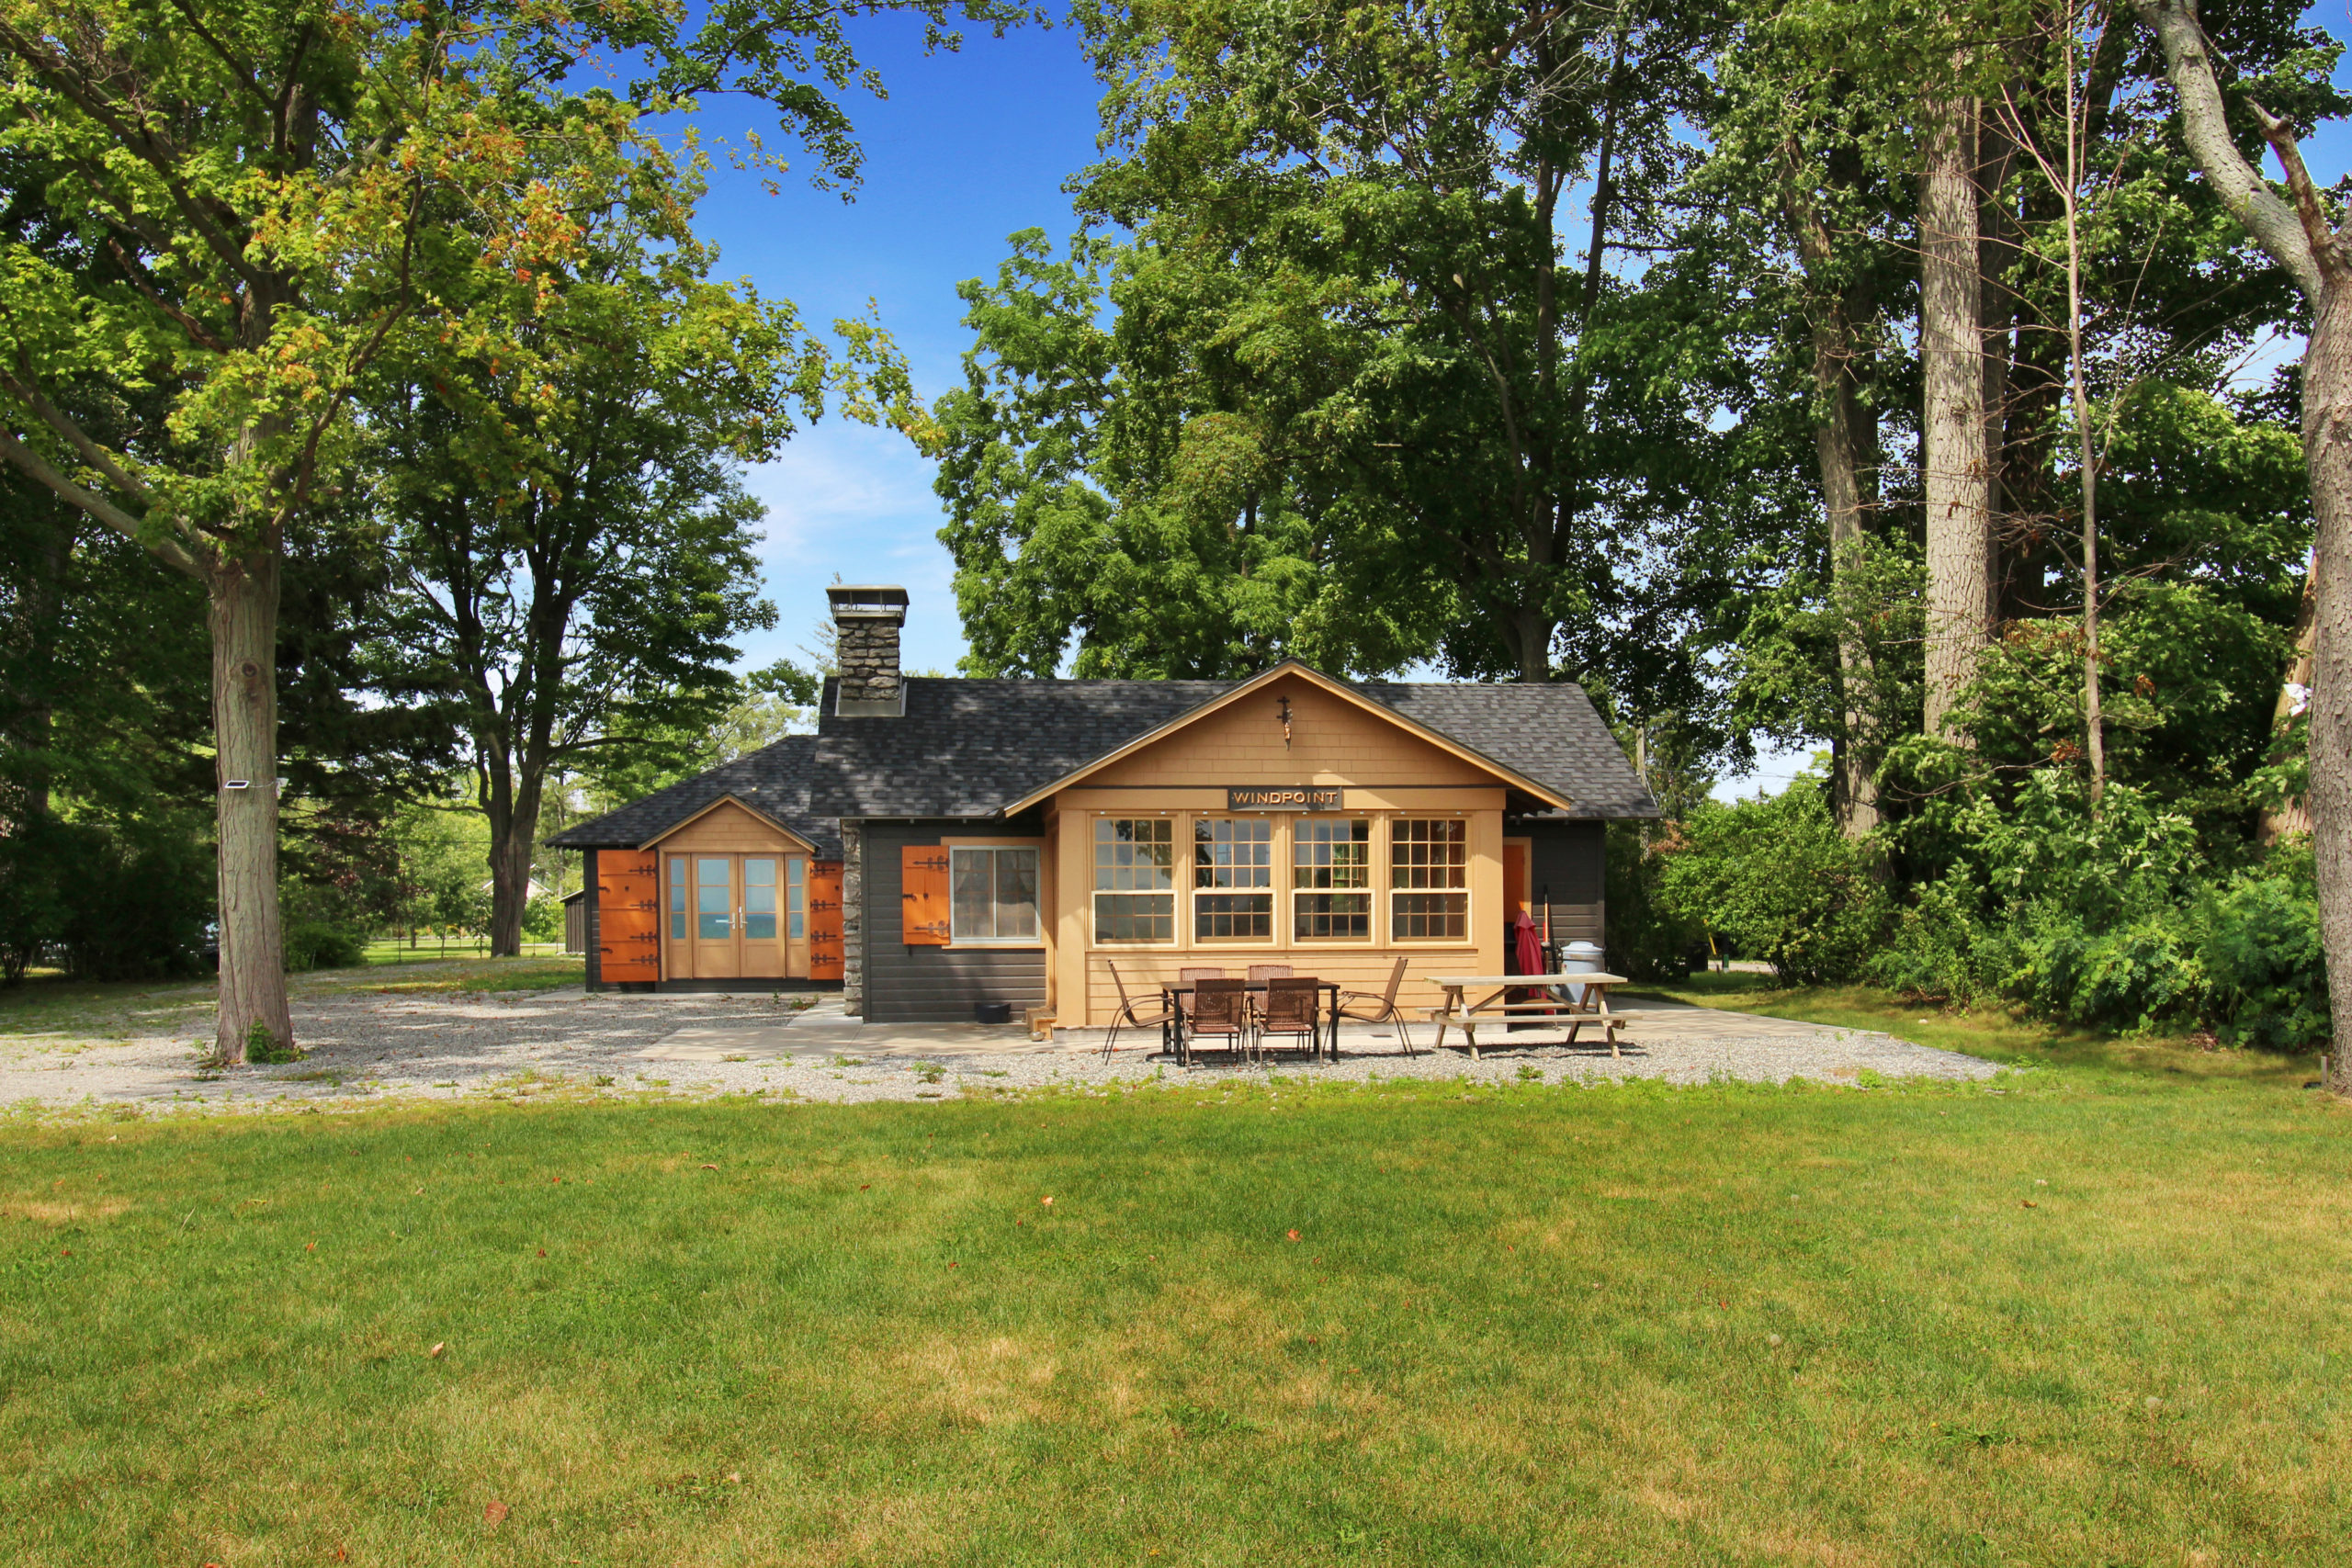 Windpoint Cottage - Waterfront Cottage - Beachfront - Lake Erie - waterfront cottages for rent